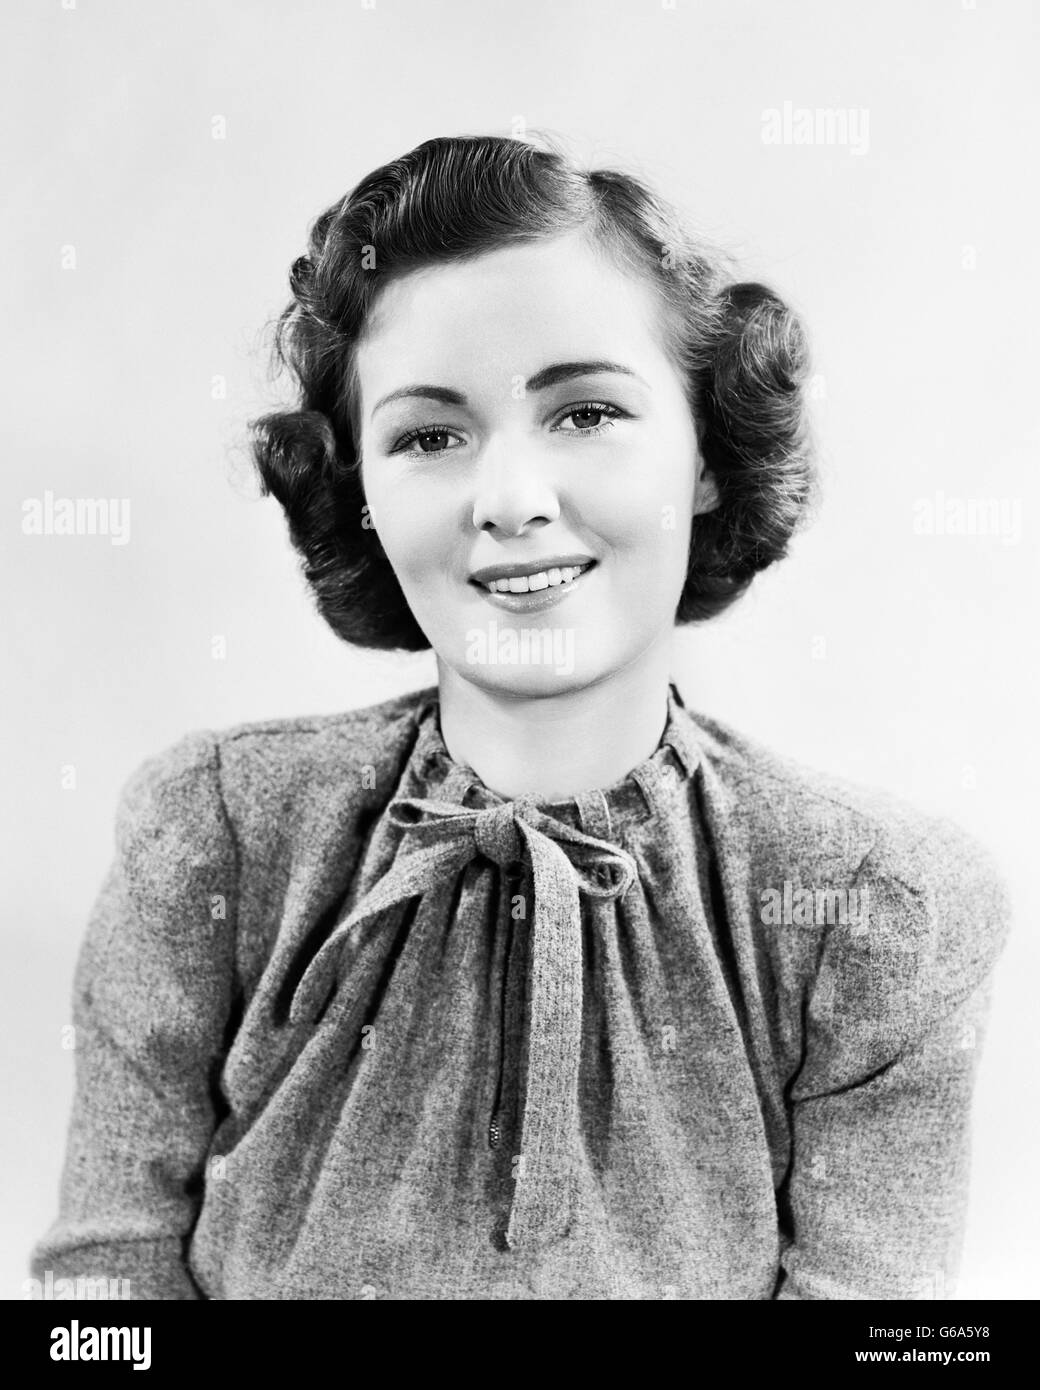 1930s 1940s PORTRAIT SMILING WOMAN WEARING WOOL TWEED SWEATER TOP SMILING AT CAMERA - Stock Image